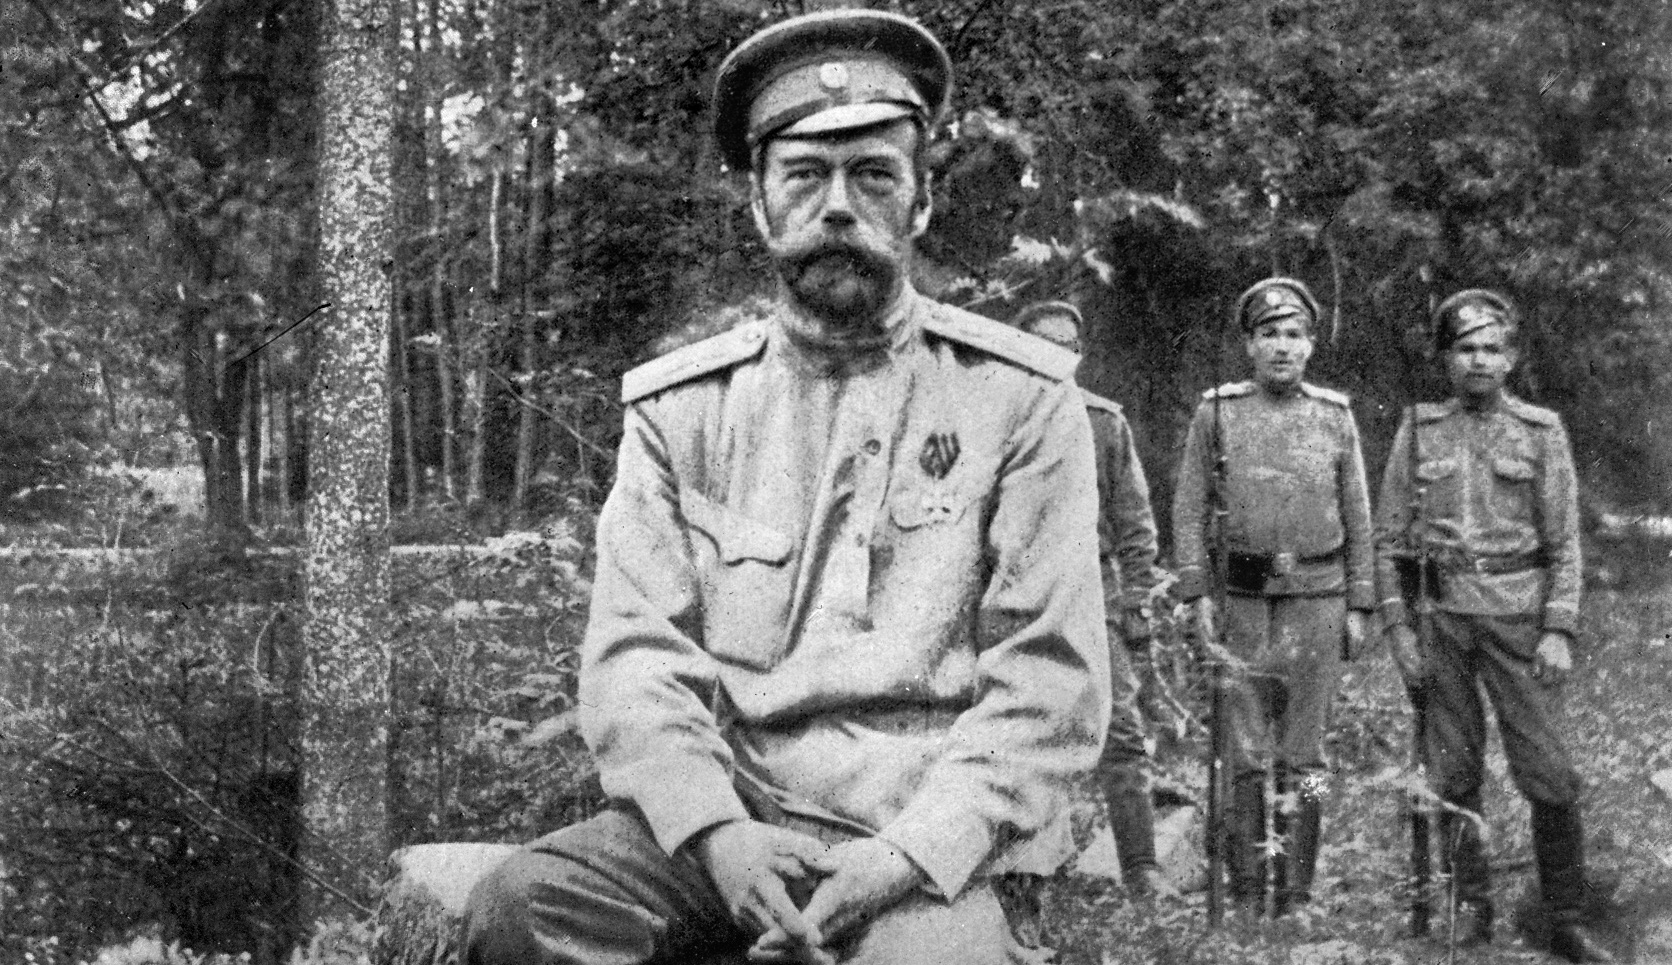 Tsar Nicholas II of Russia, a great believer in the Protocols. Wikipedia.